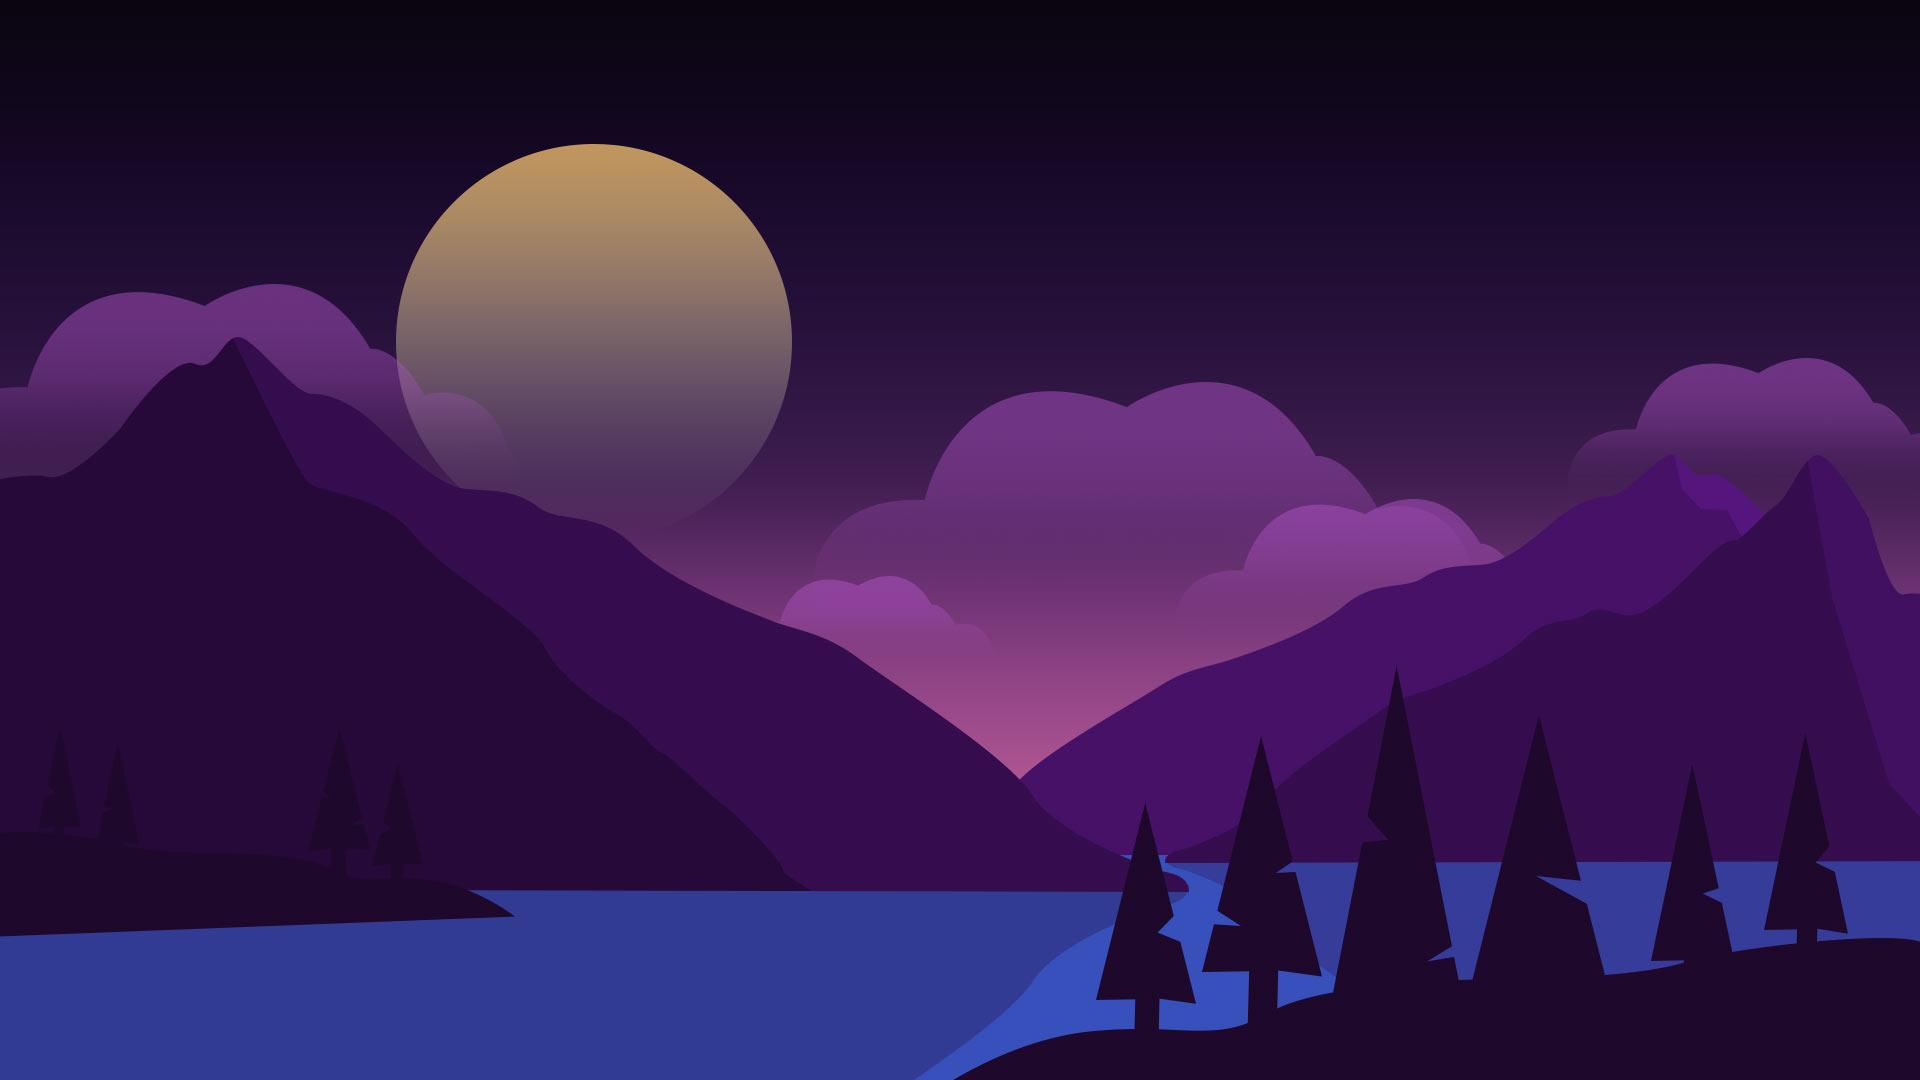 How to draw a vector landscape in Photoshop